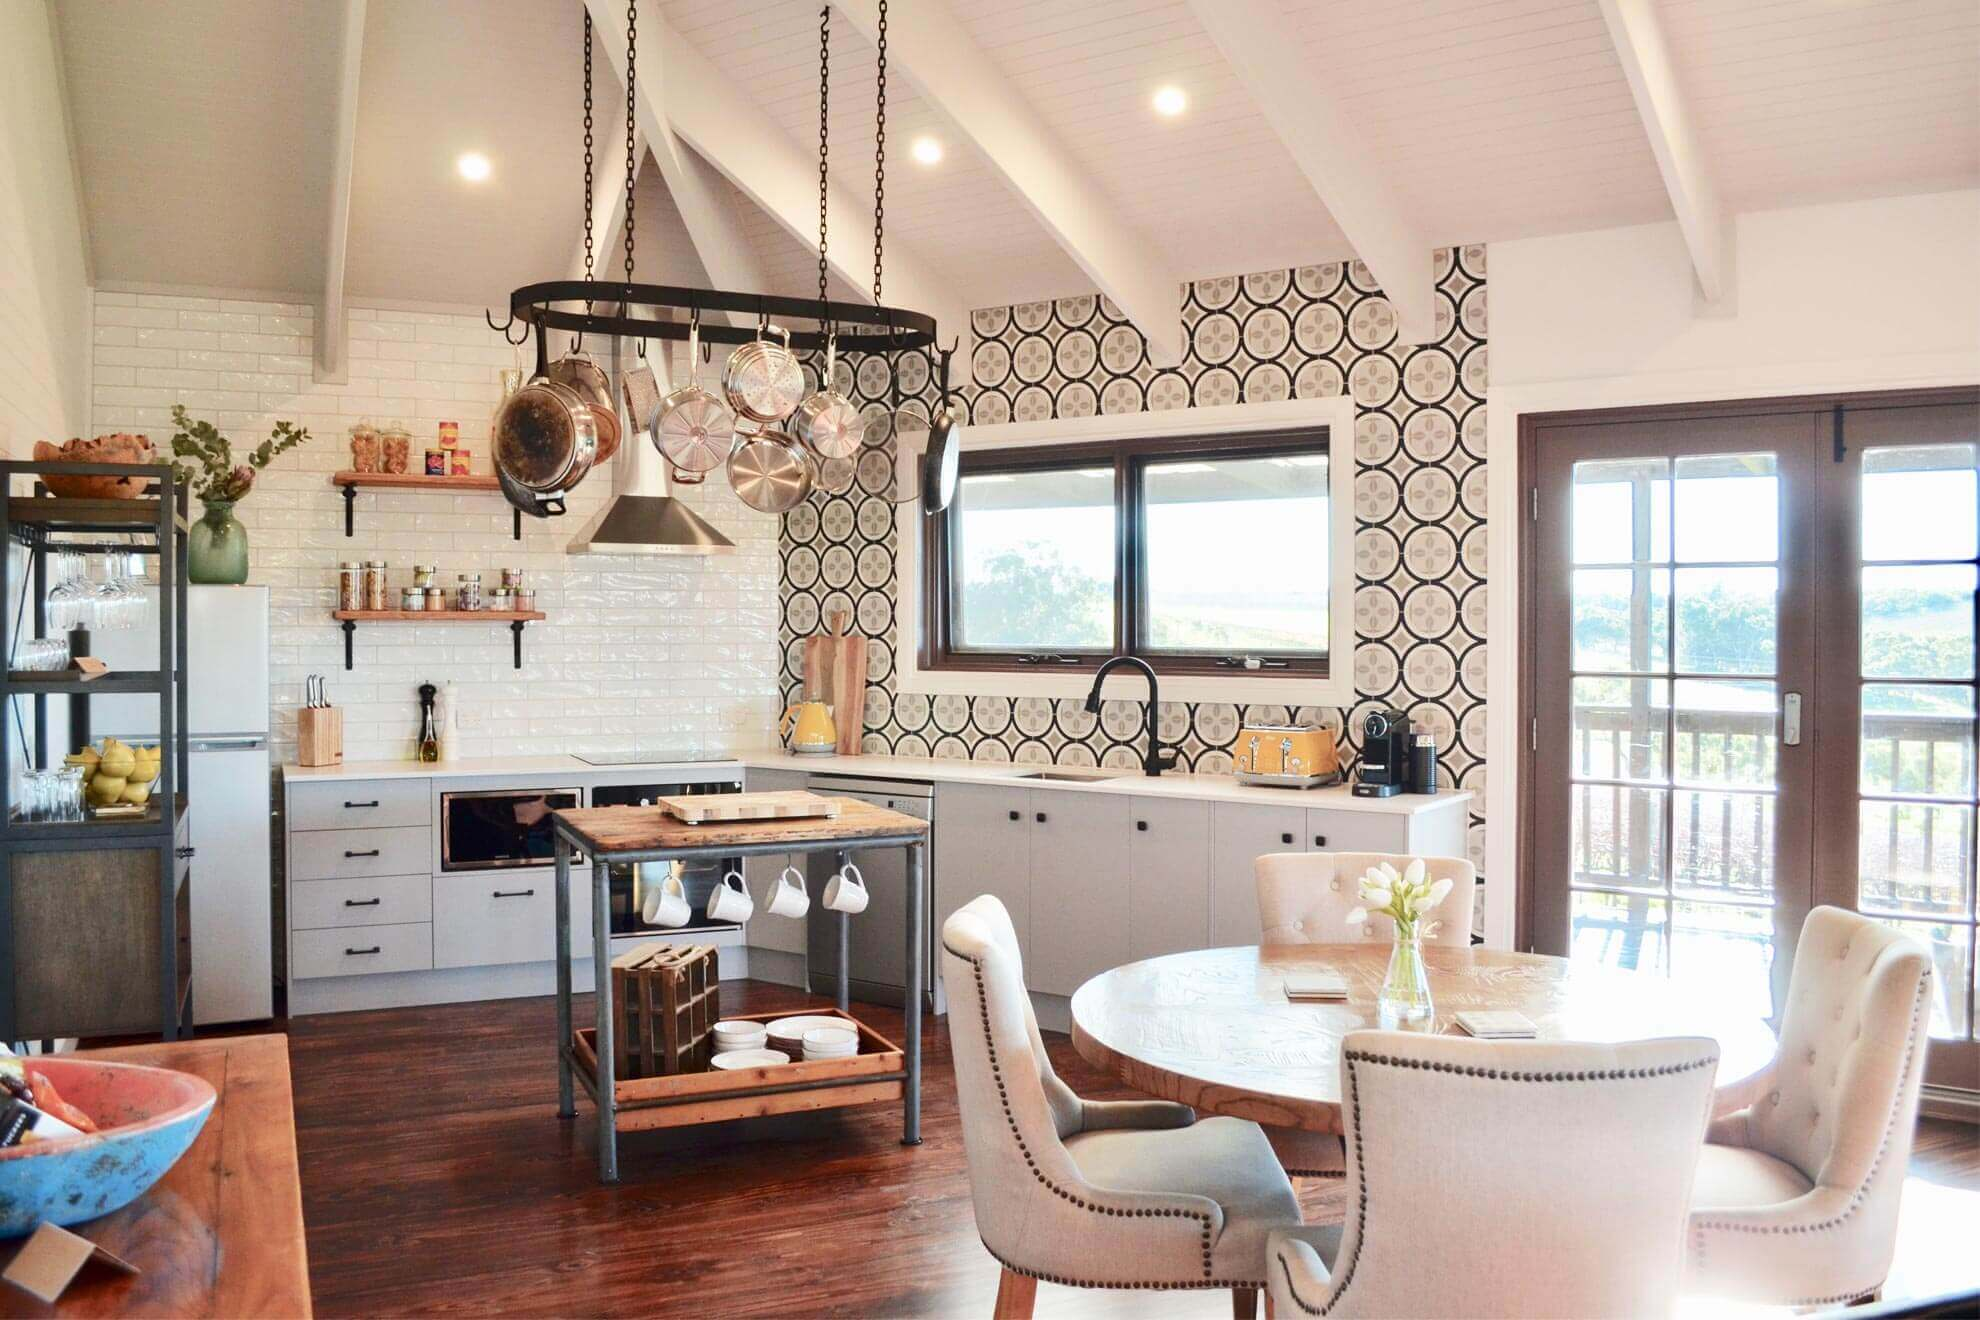 Kitchen for all chefs